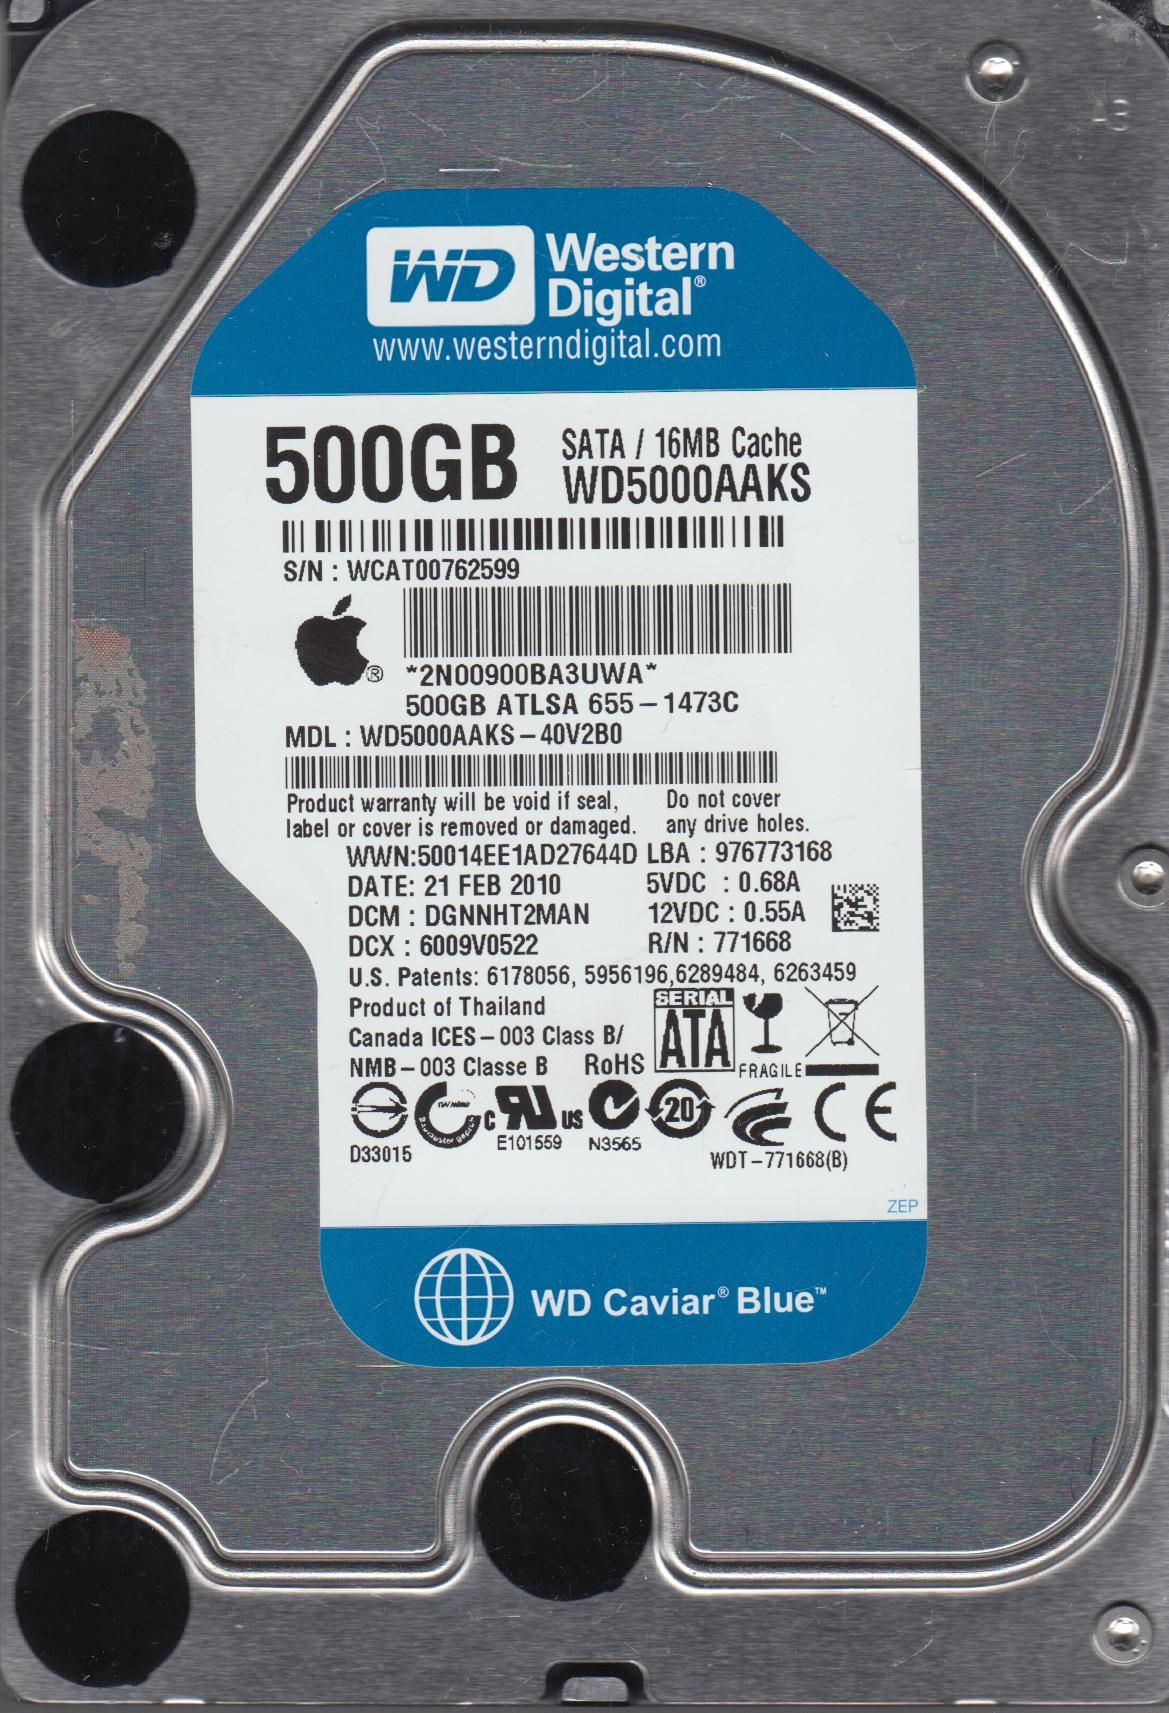 WD5000AAKS-40V2B0, DCM DGNNHT2MAN, Western Digital 500GB SATA 3.5 Hard Drive by WD